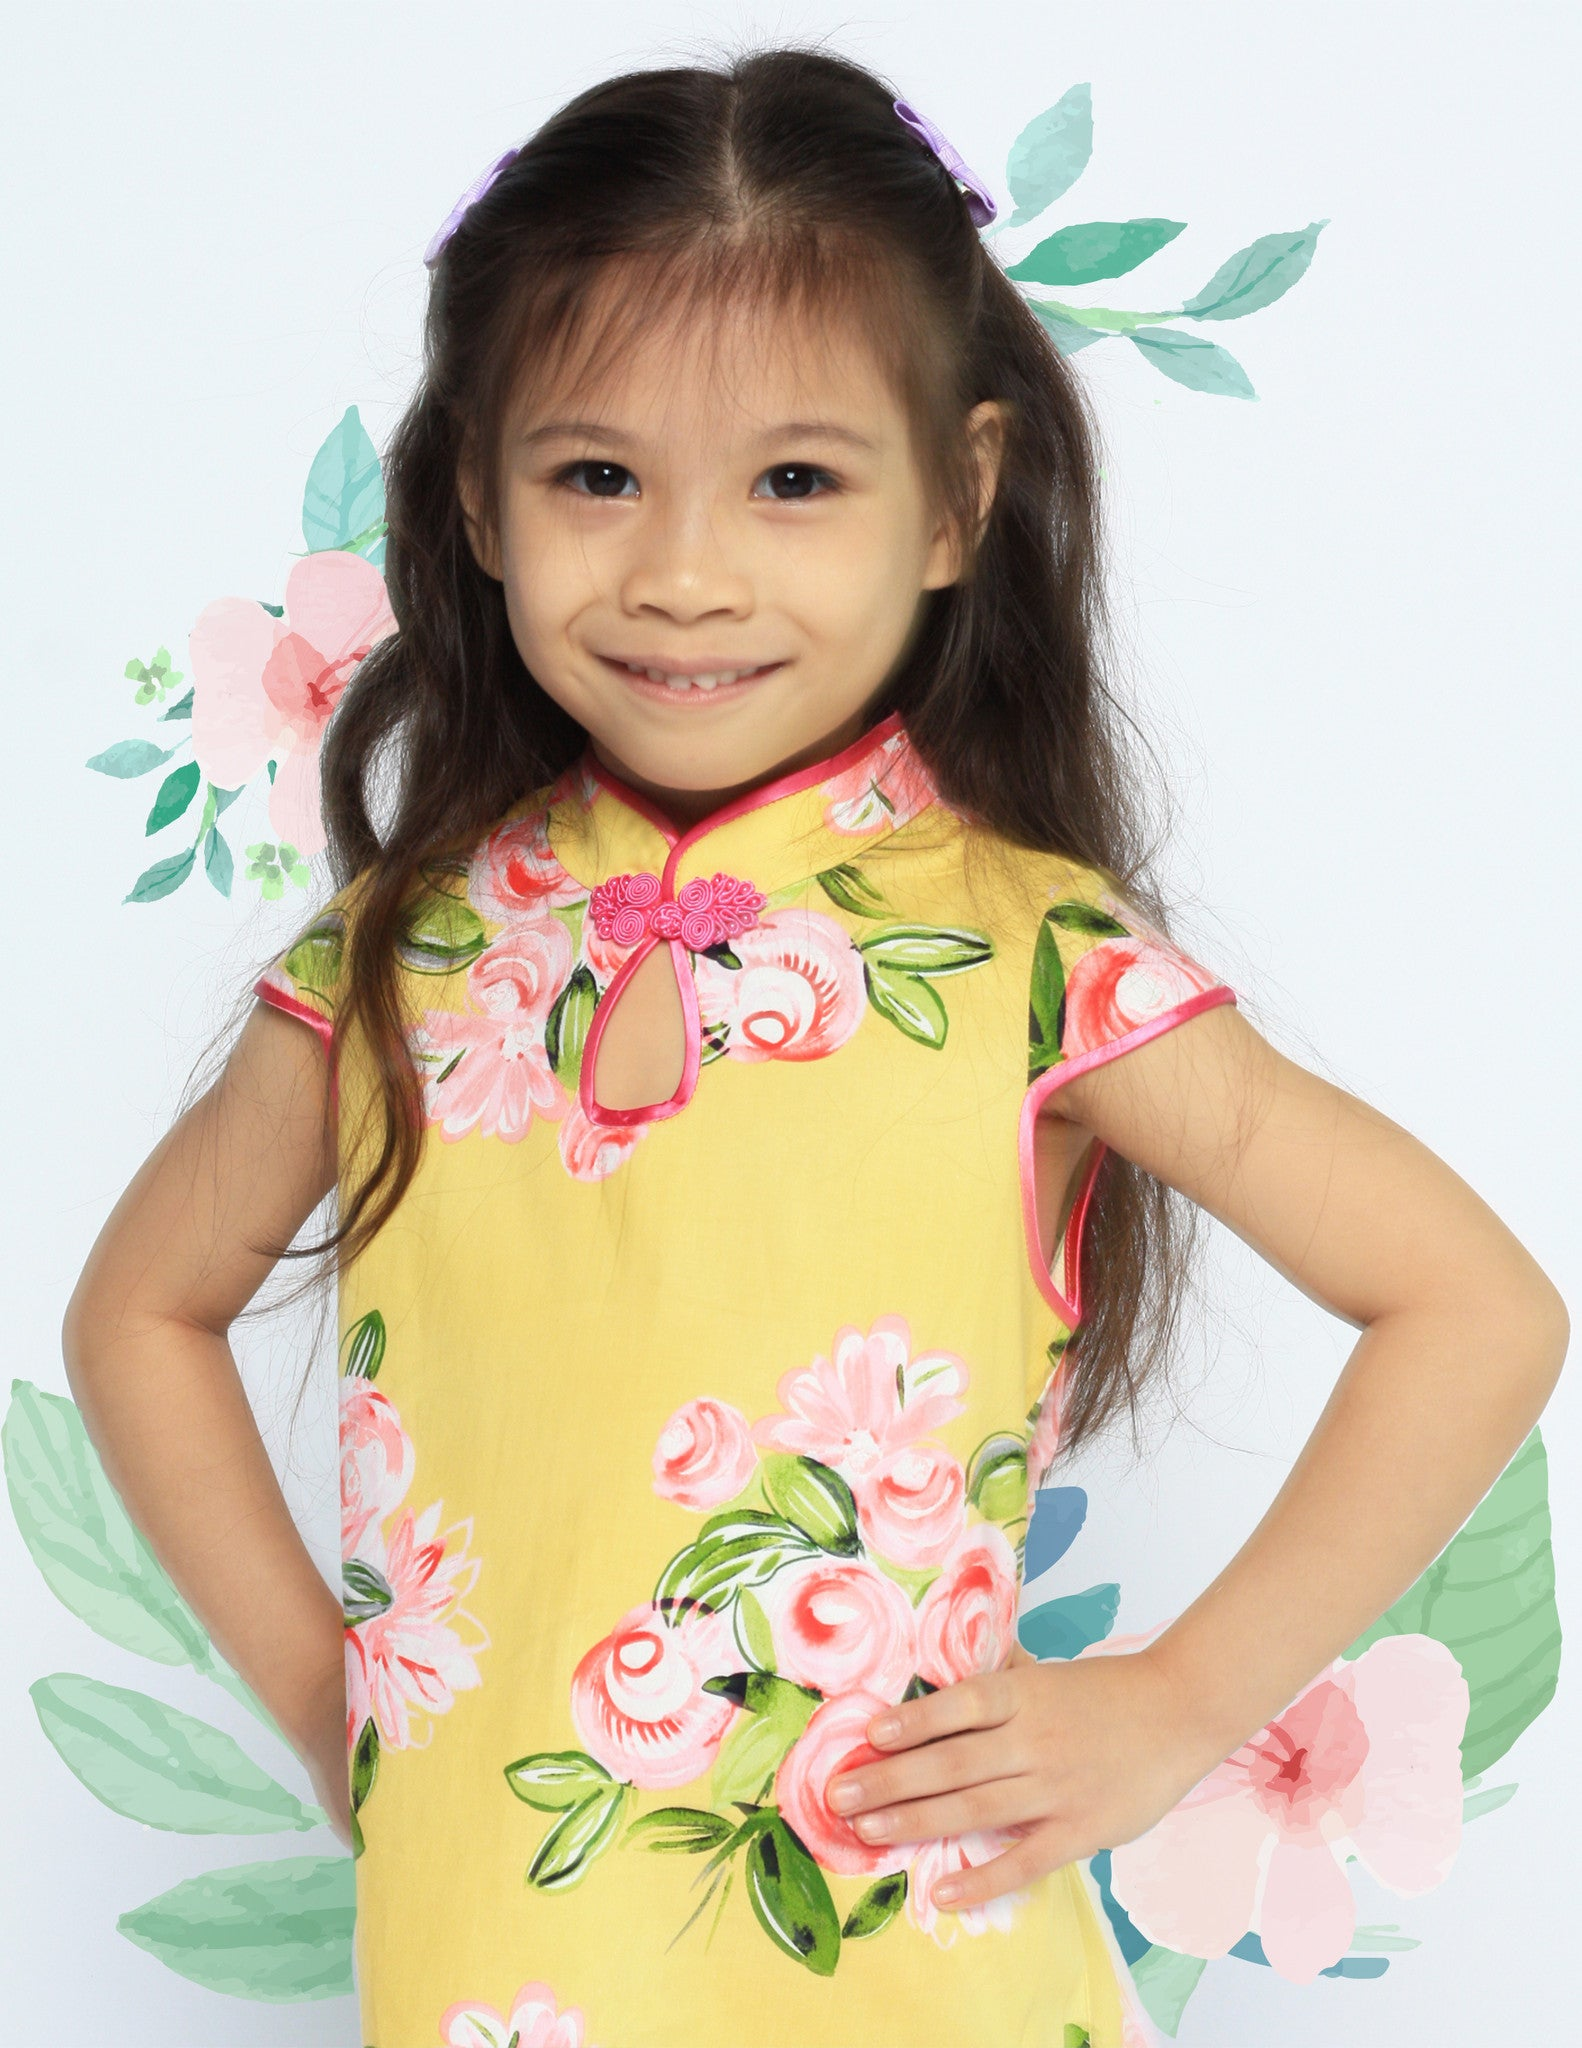 Bella Bouquet in Bloom Girls Cheongsam